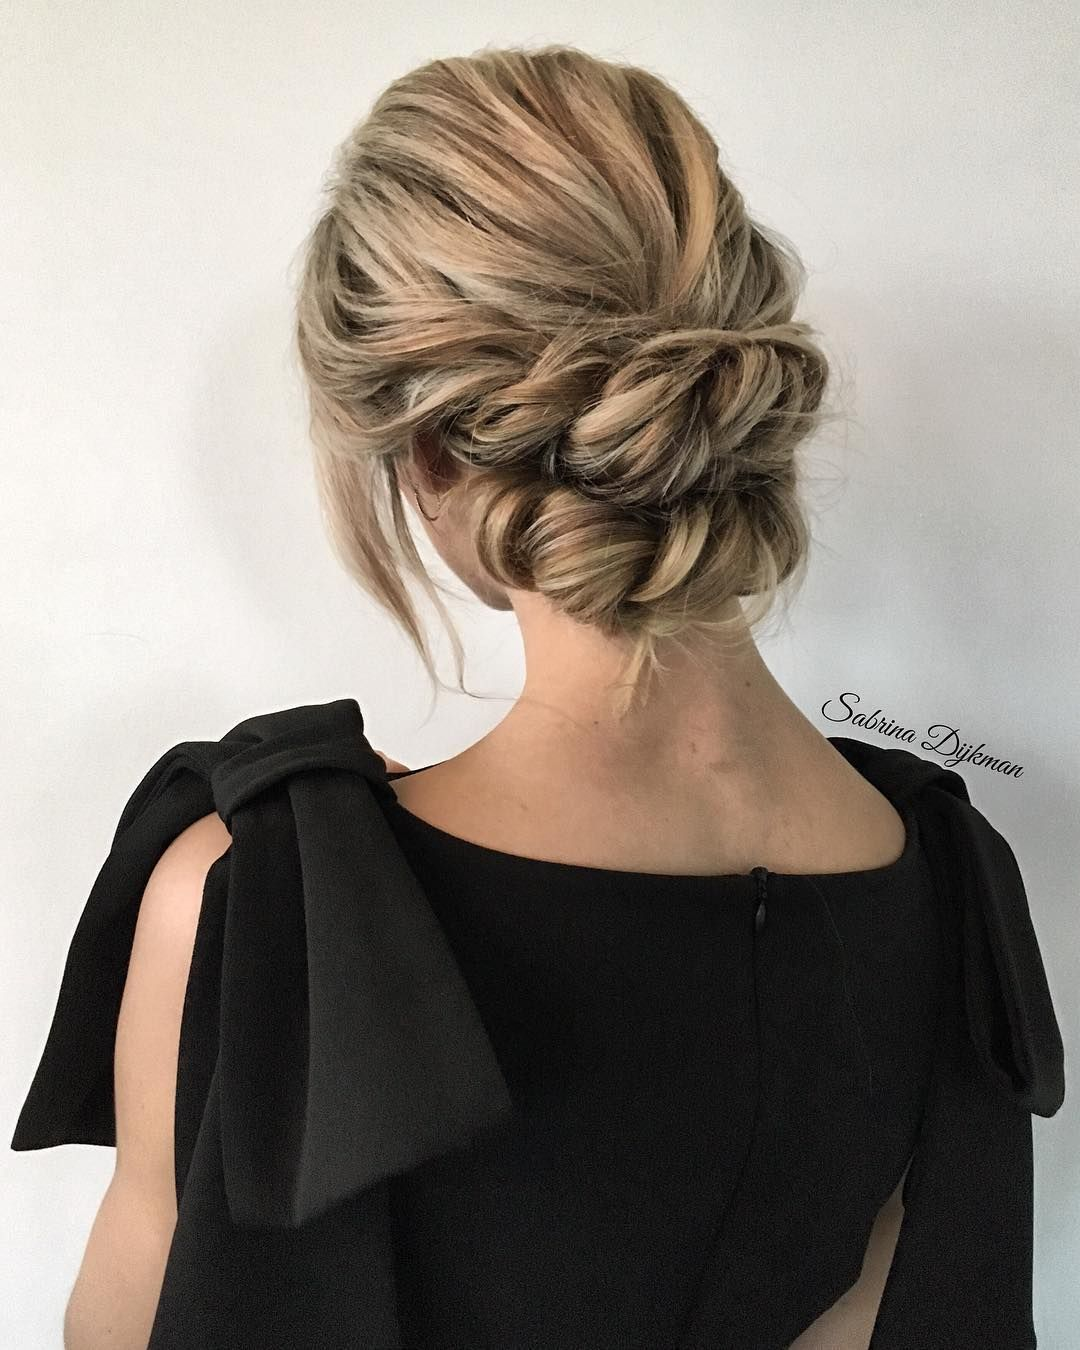 The updo twisted rare photo